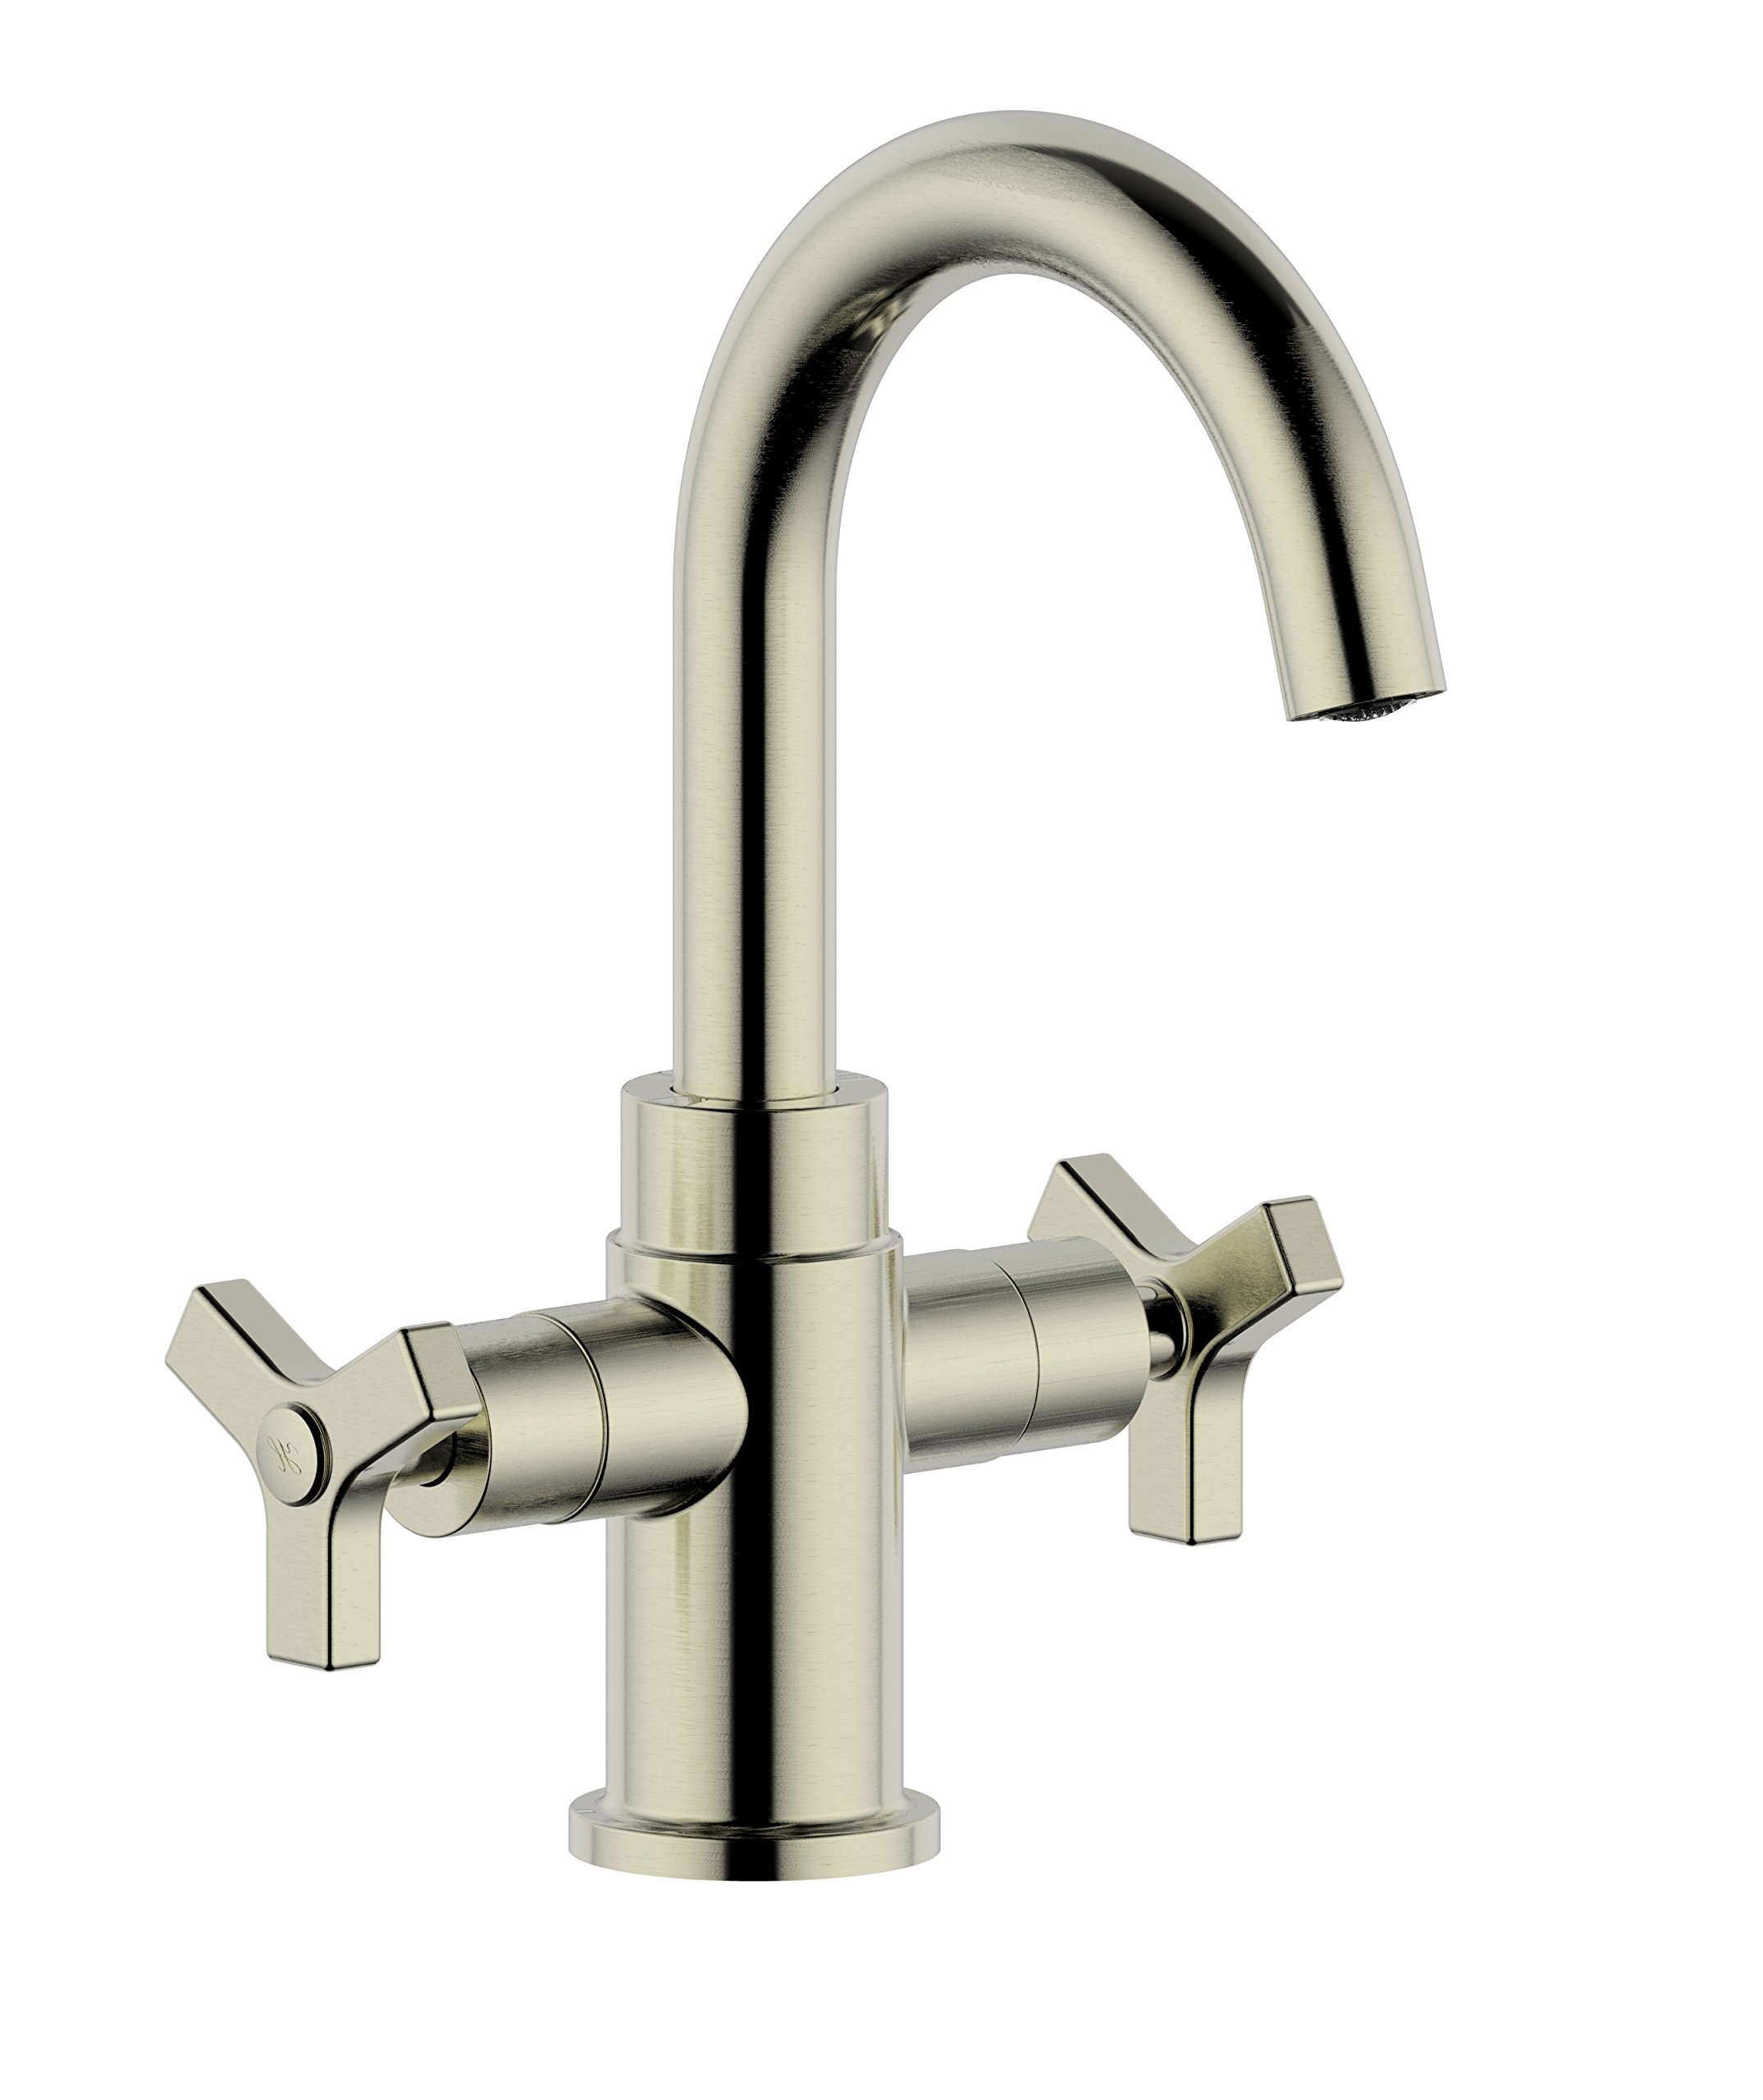 Derengge F-0081-BN Two-Handle Single Hole Bathroom Sink Faucet, Meets cUPC NSF 61-9 AB1953 Lead Free, Brushed Nickel Finished